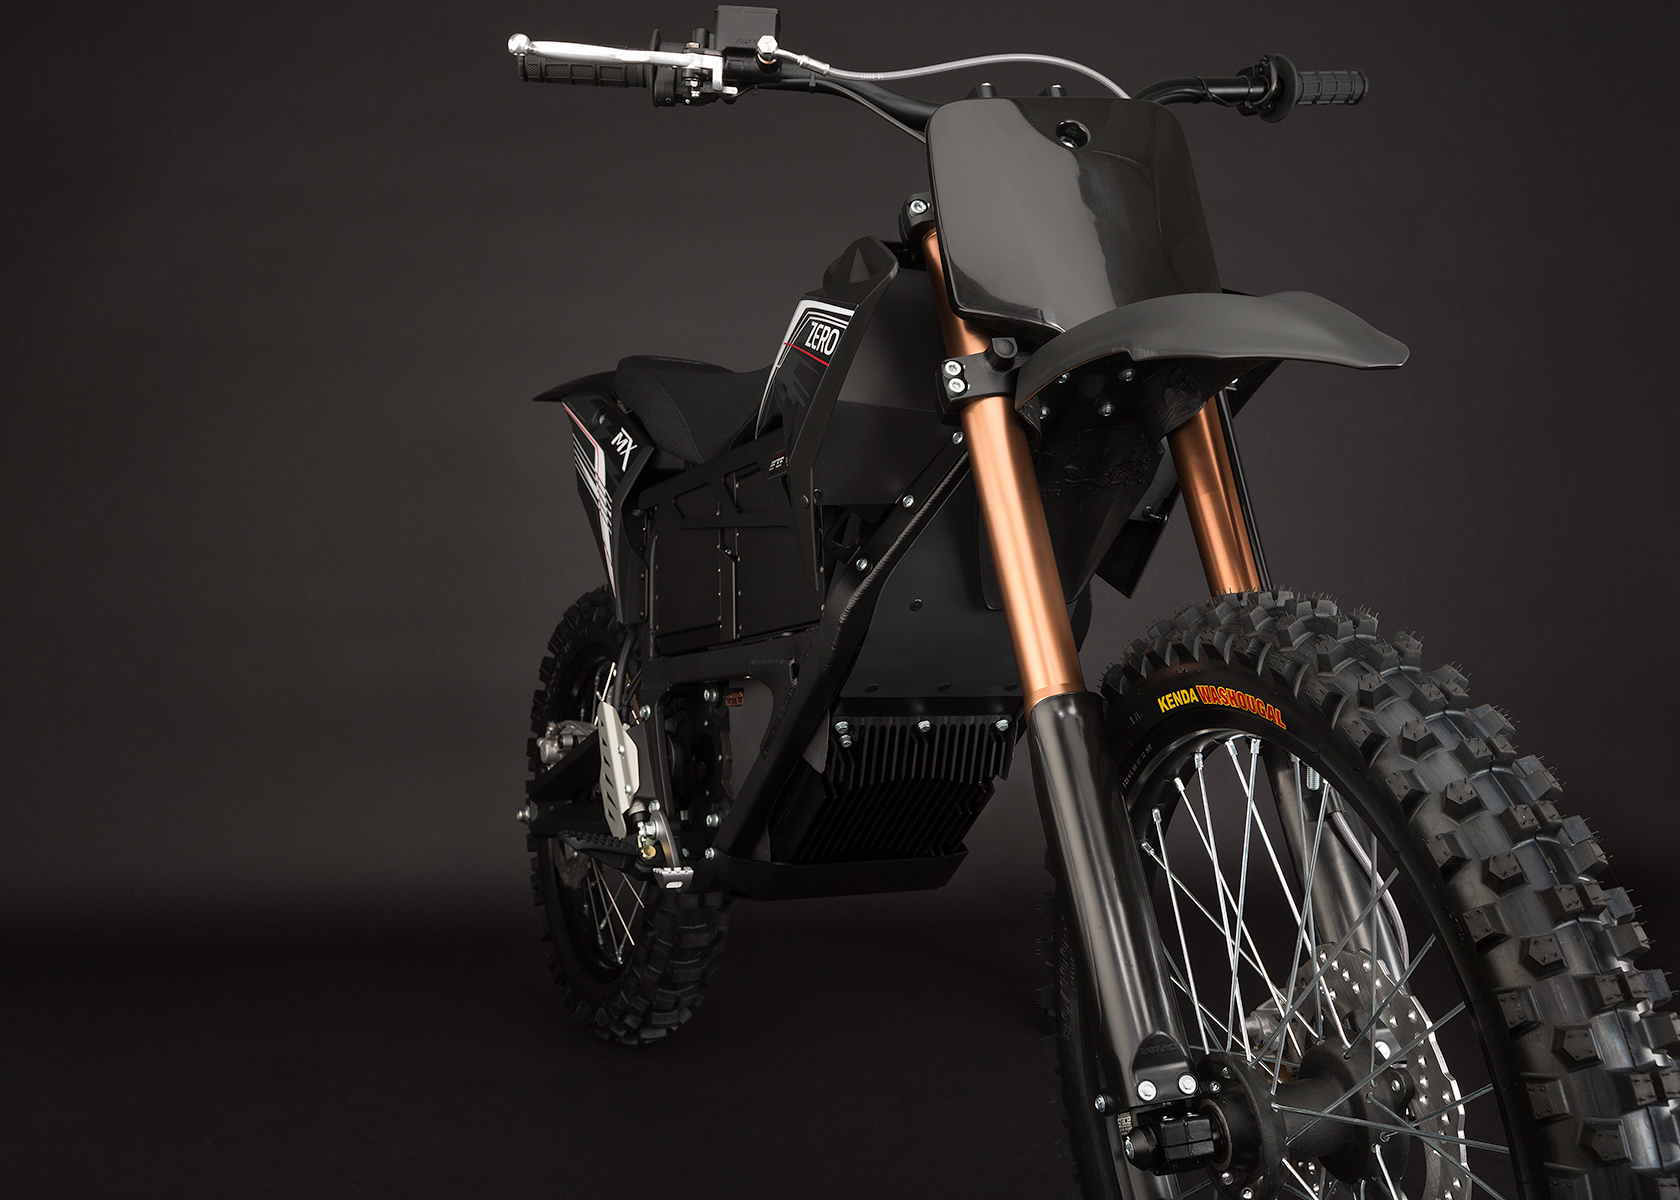 2013 Zero MX Electric Motorcycle: Front Fork